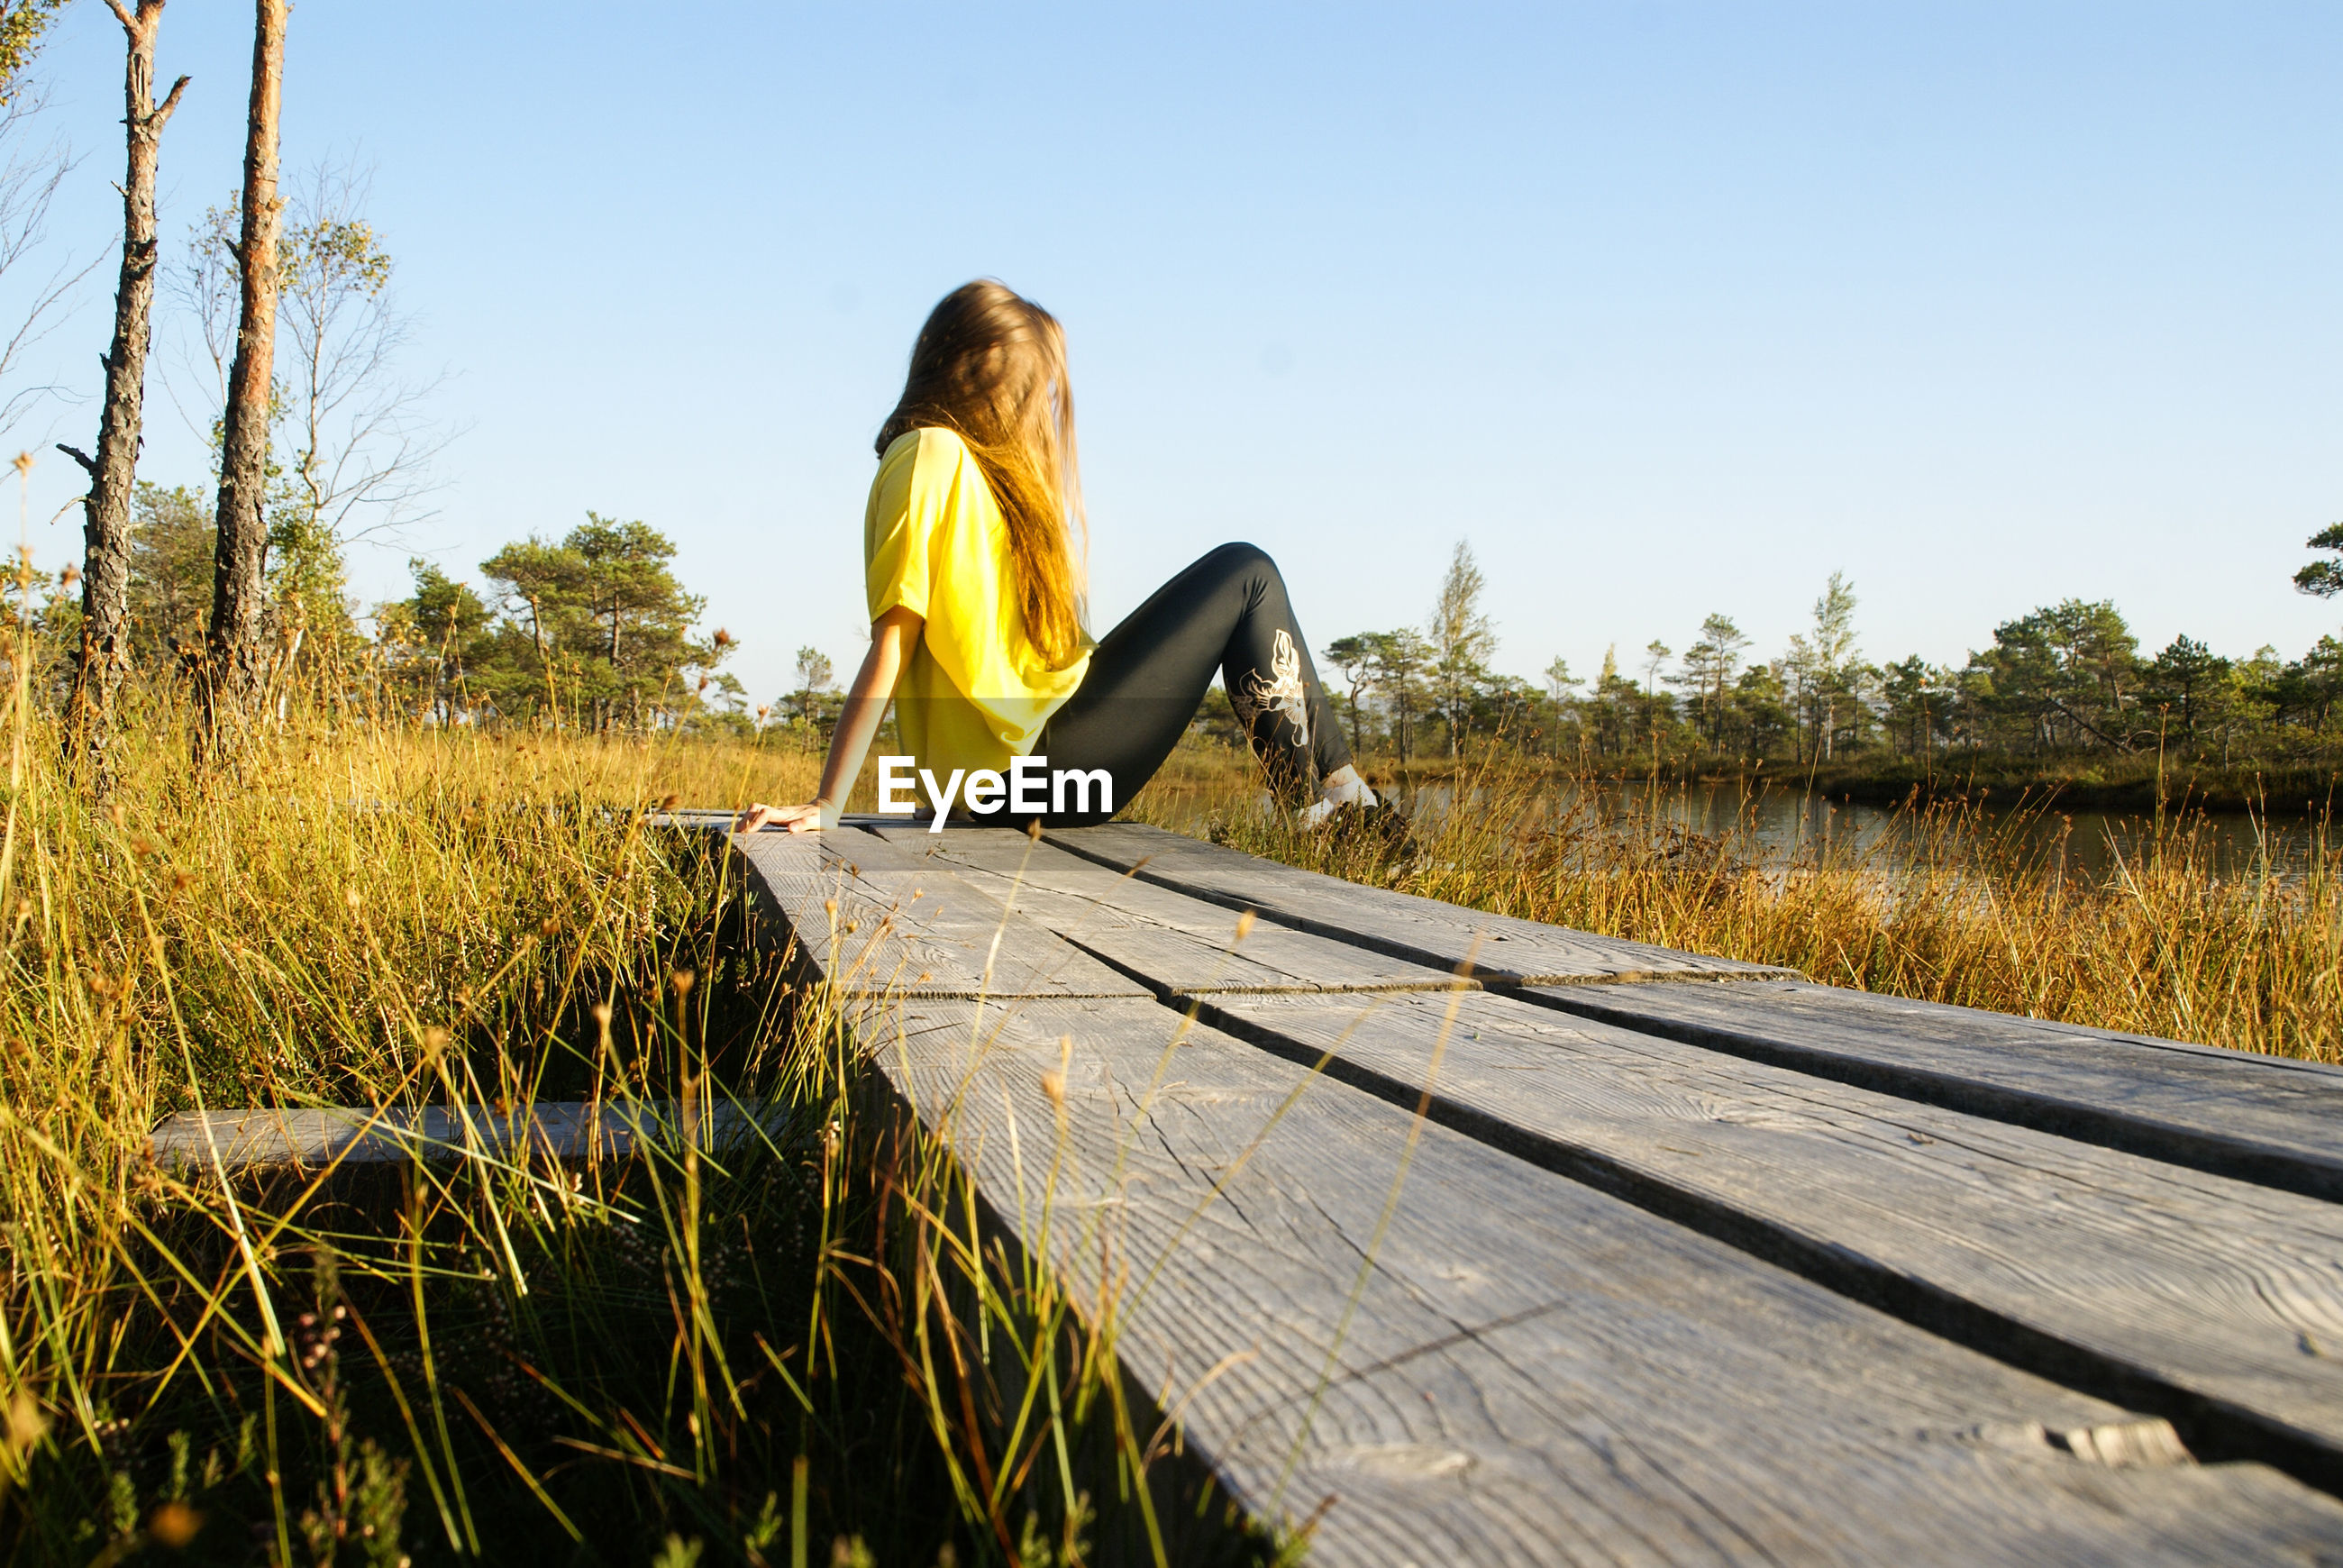 Young woman sitting on boardwalk against clear sky